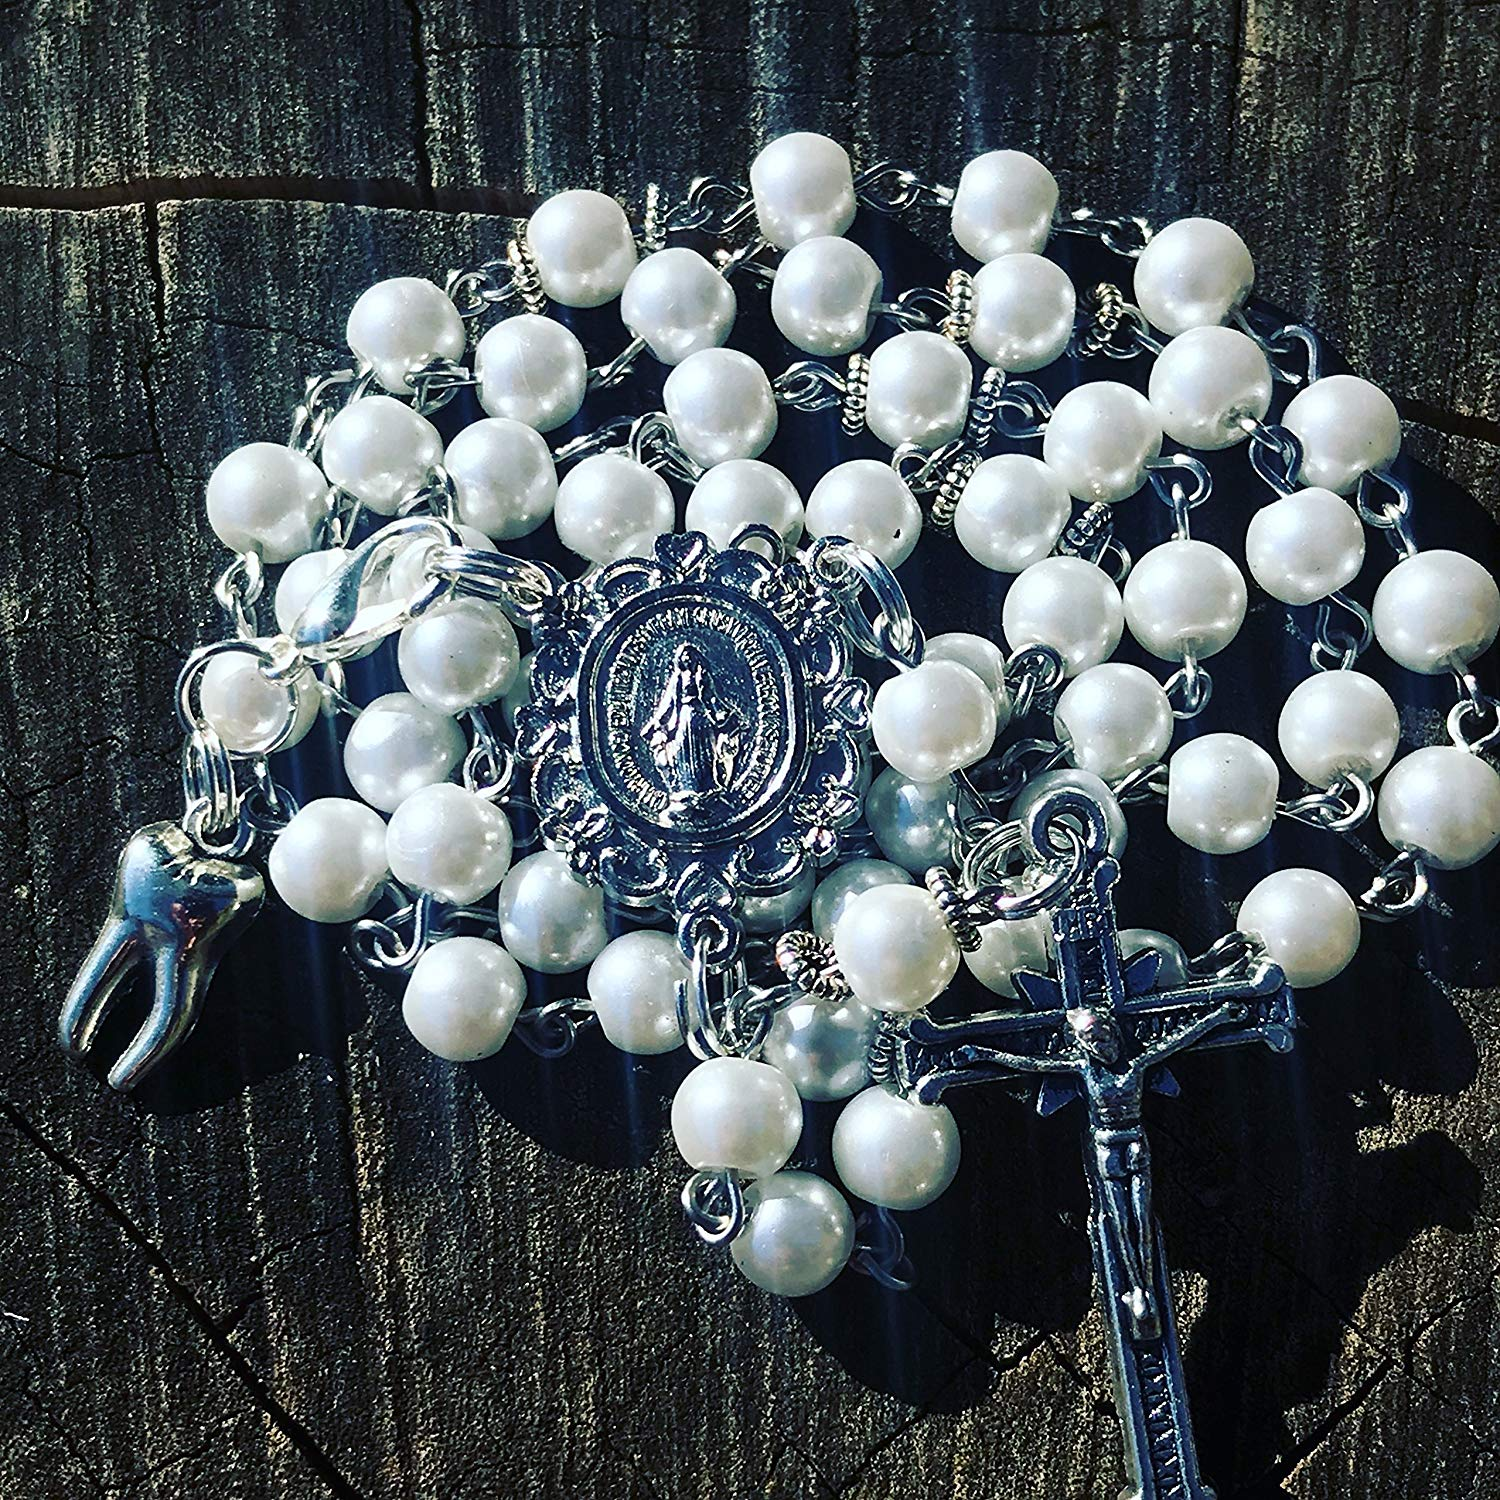 Cheap Catholic Gift Store Near Me, find Catholic Gift Store Near Me